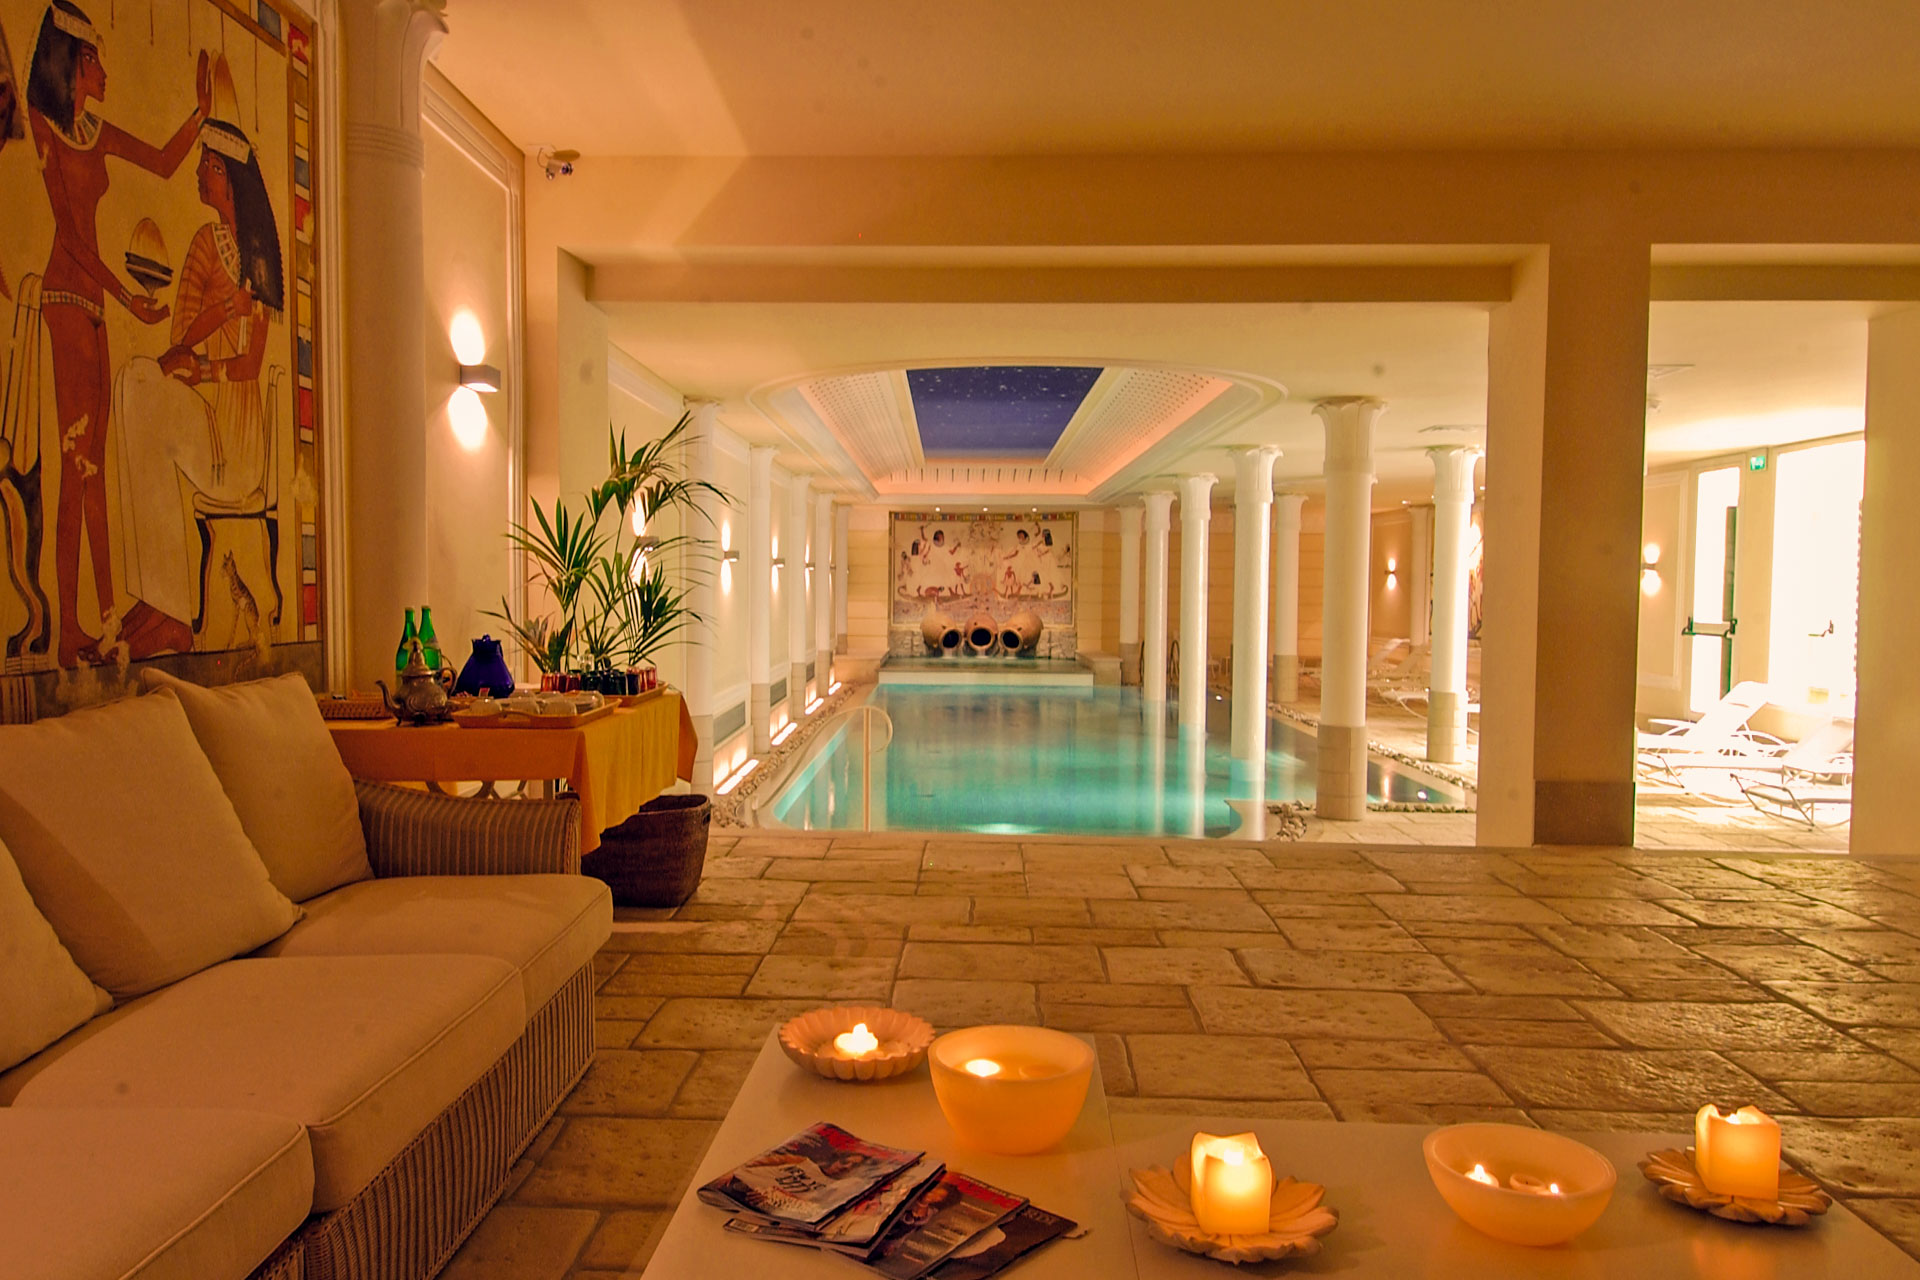 Relaxation area, Iside Spa